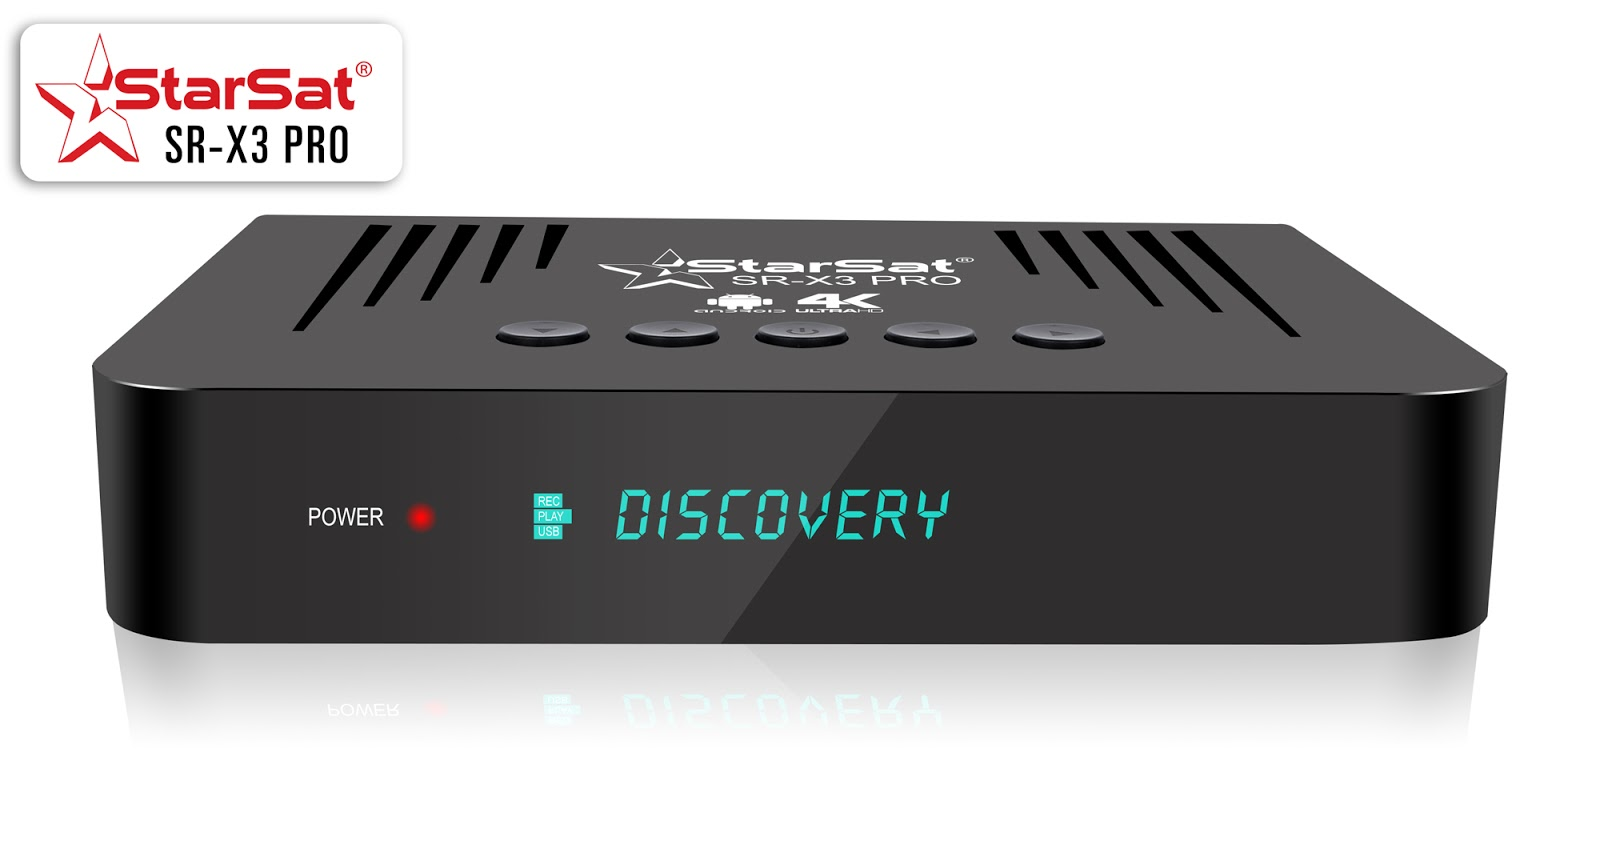 StarSat SR-X3 PRO V3 3 5 Receiver Software July 24, 2019